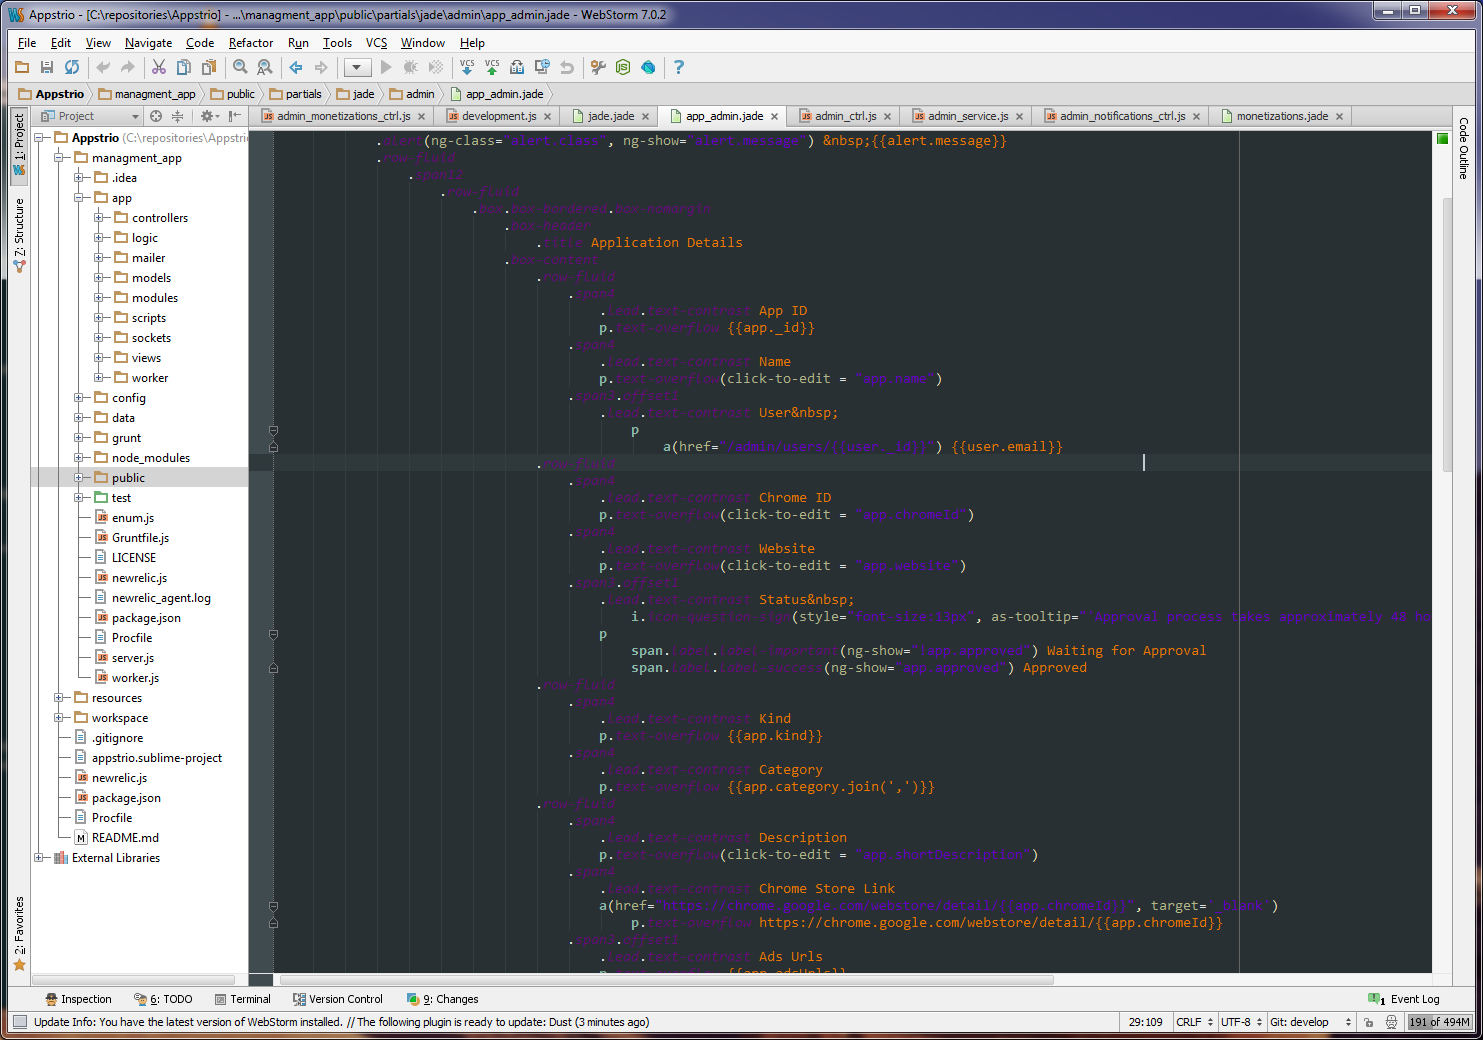 On webstorm IDE - jade files are unreadable using the